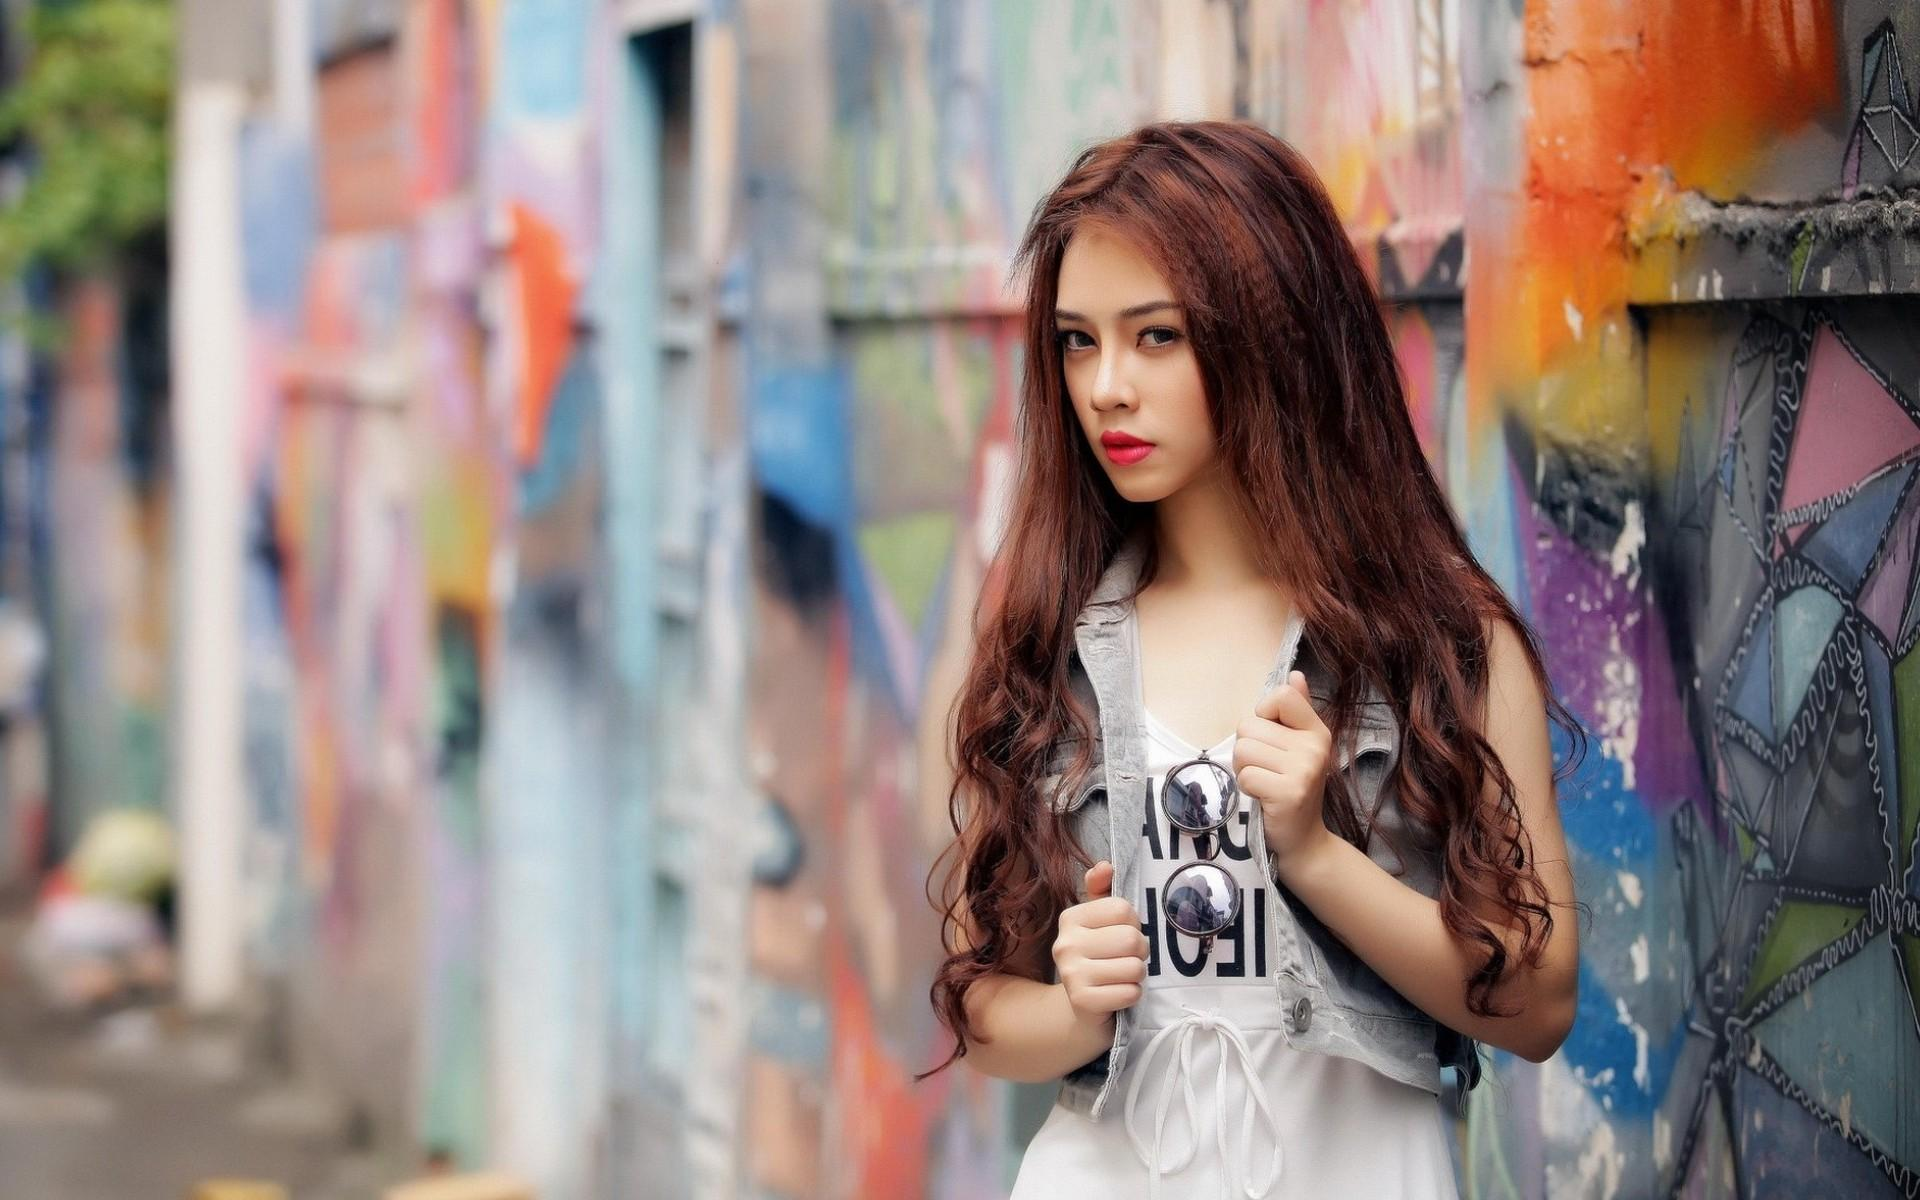 Pretty Girls Wallpapers Wallpaper Cave